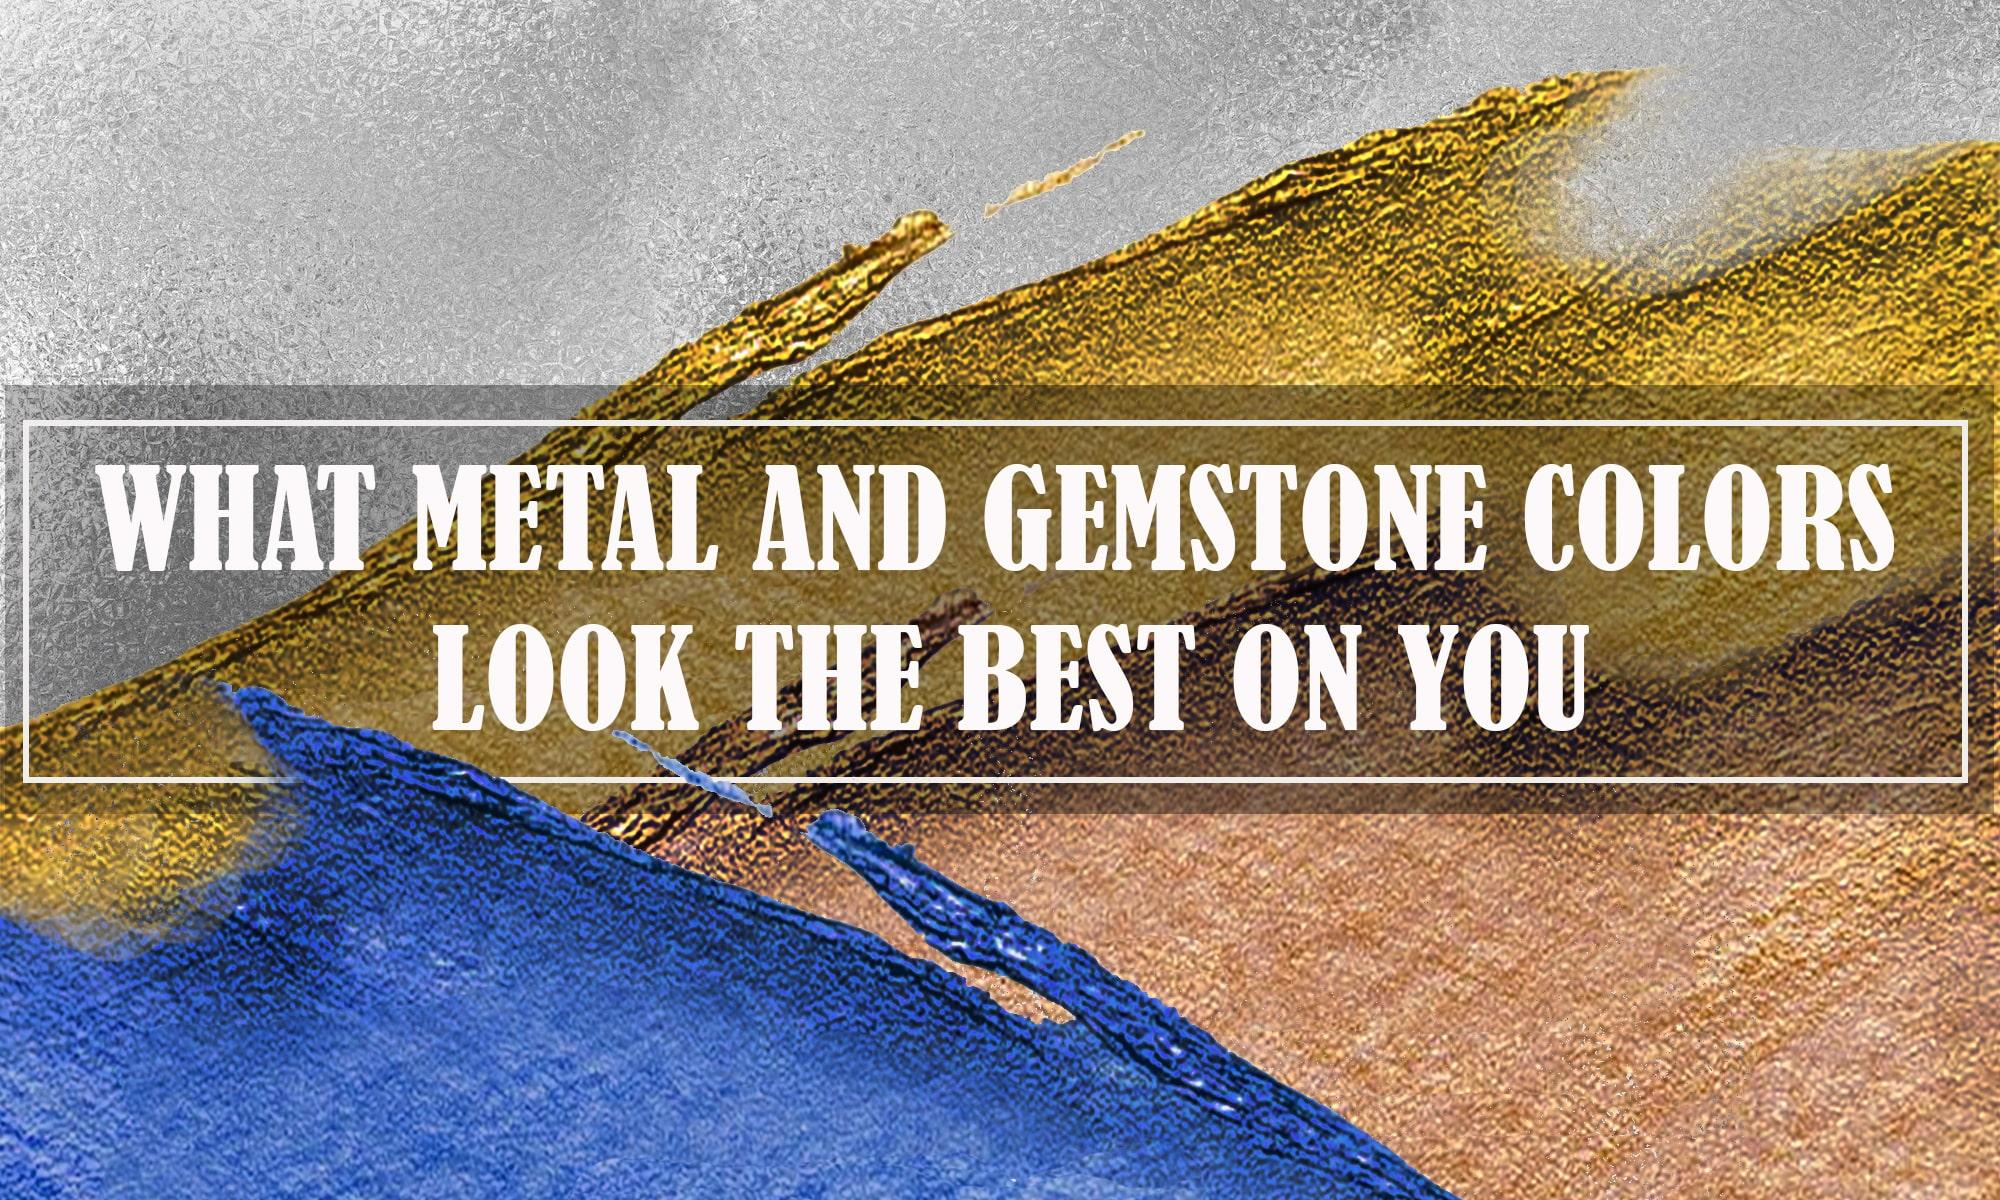 What metal & gemstone colors look the best on you